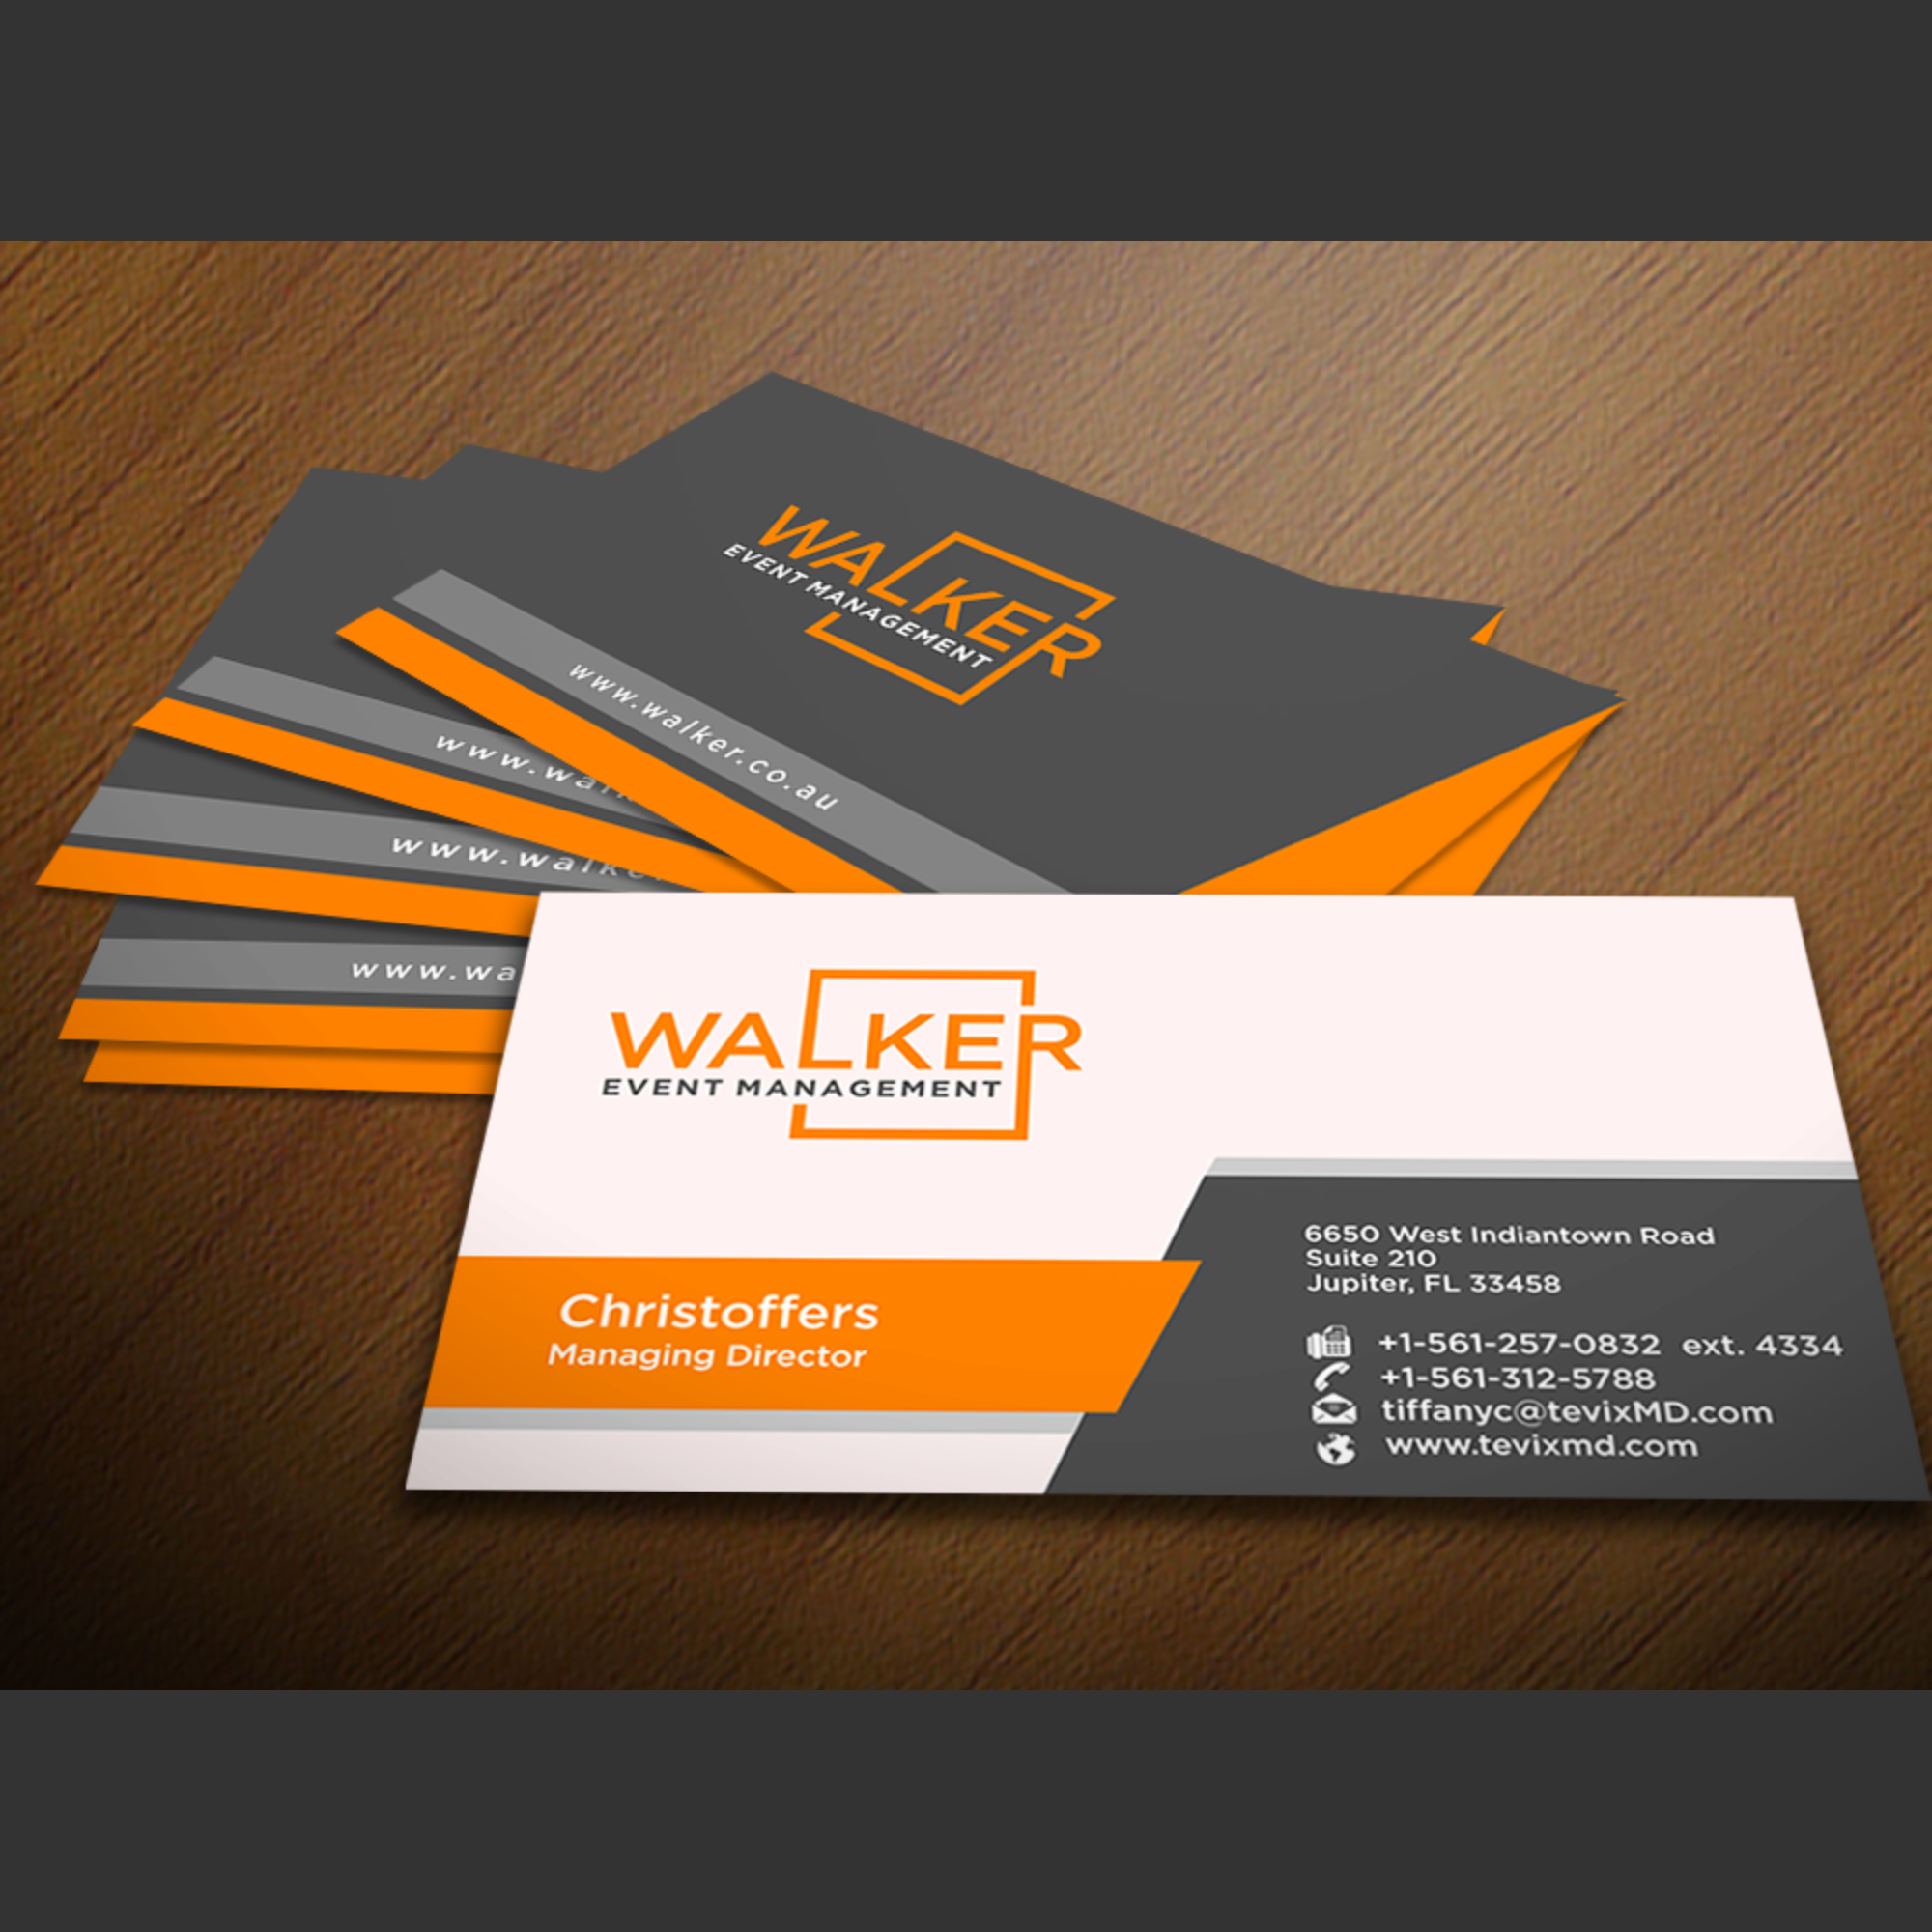 Pin by Sabuj Mollik on Corporate Business Card | Pinterest ...